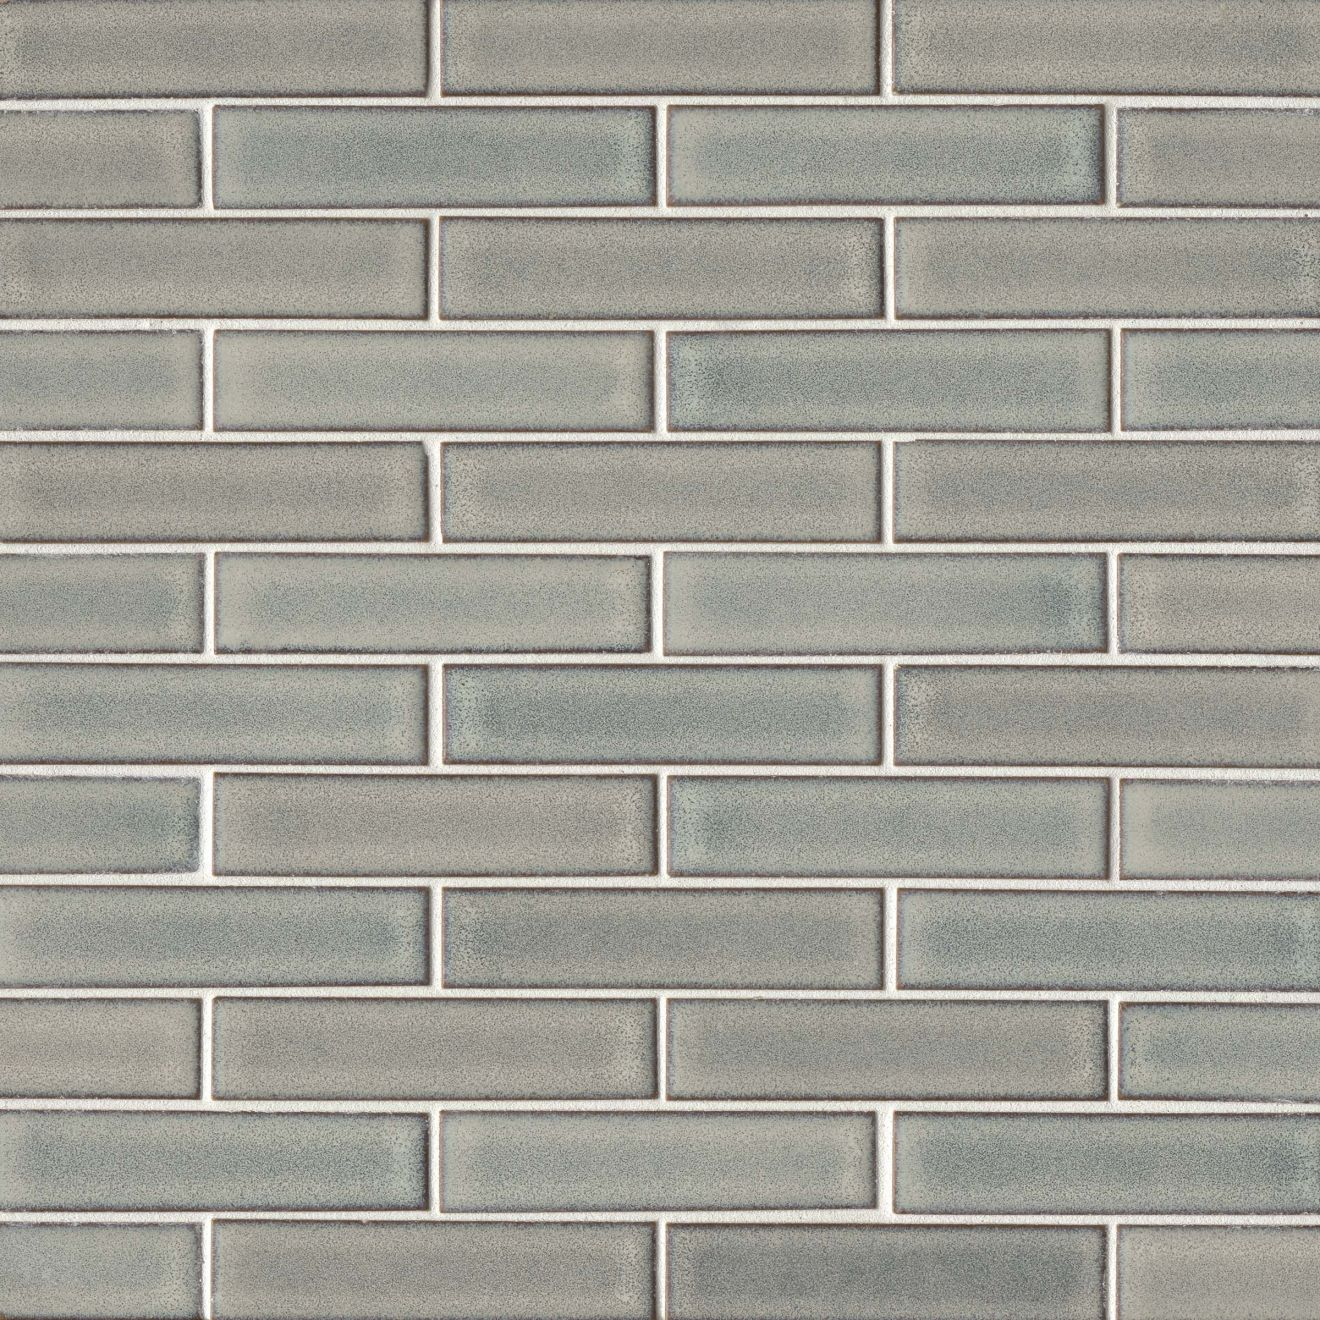 "Seni 1"" x 4"" Floor & Wall Mosaic in Grey"